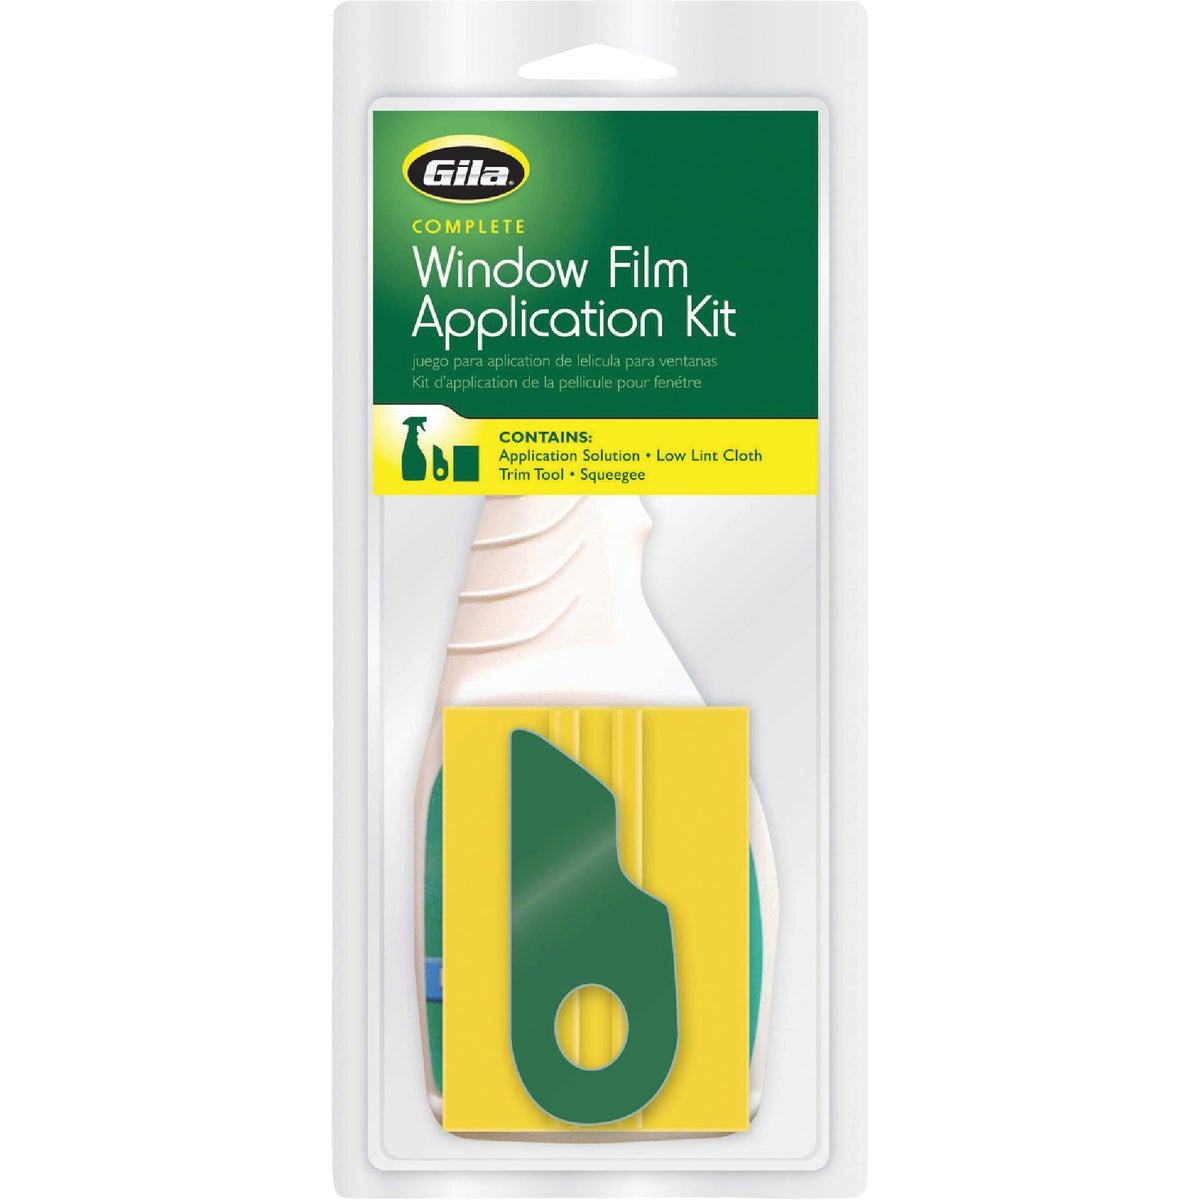 WINDOW FILM APP KIT